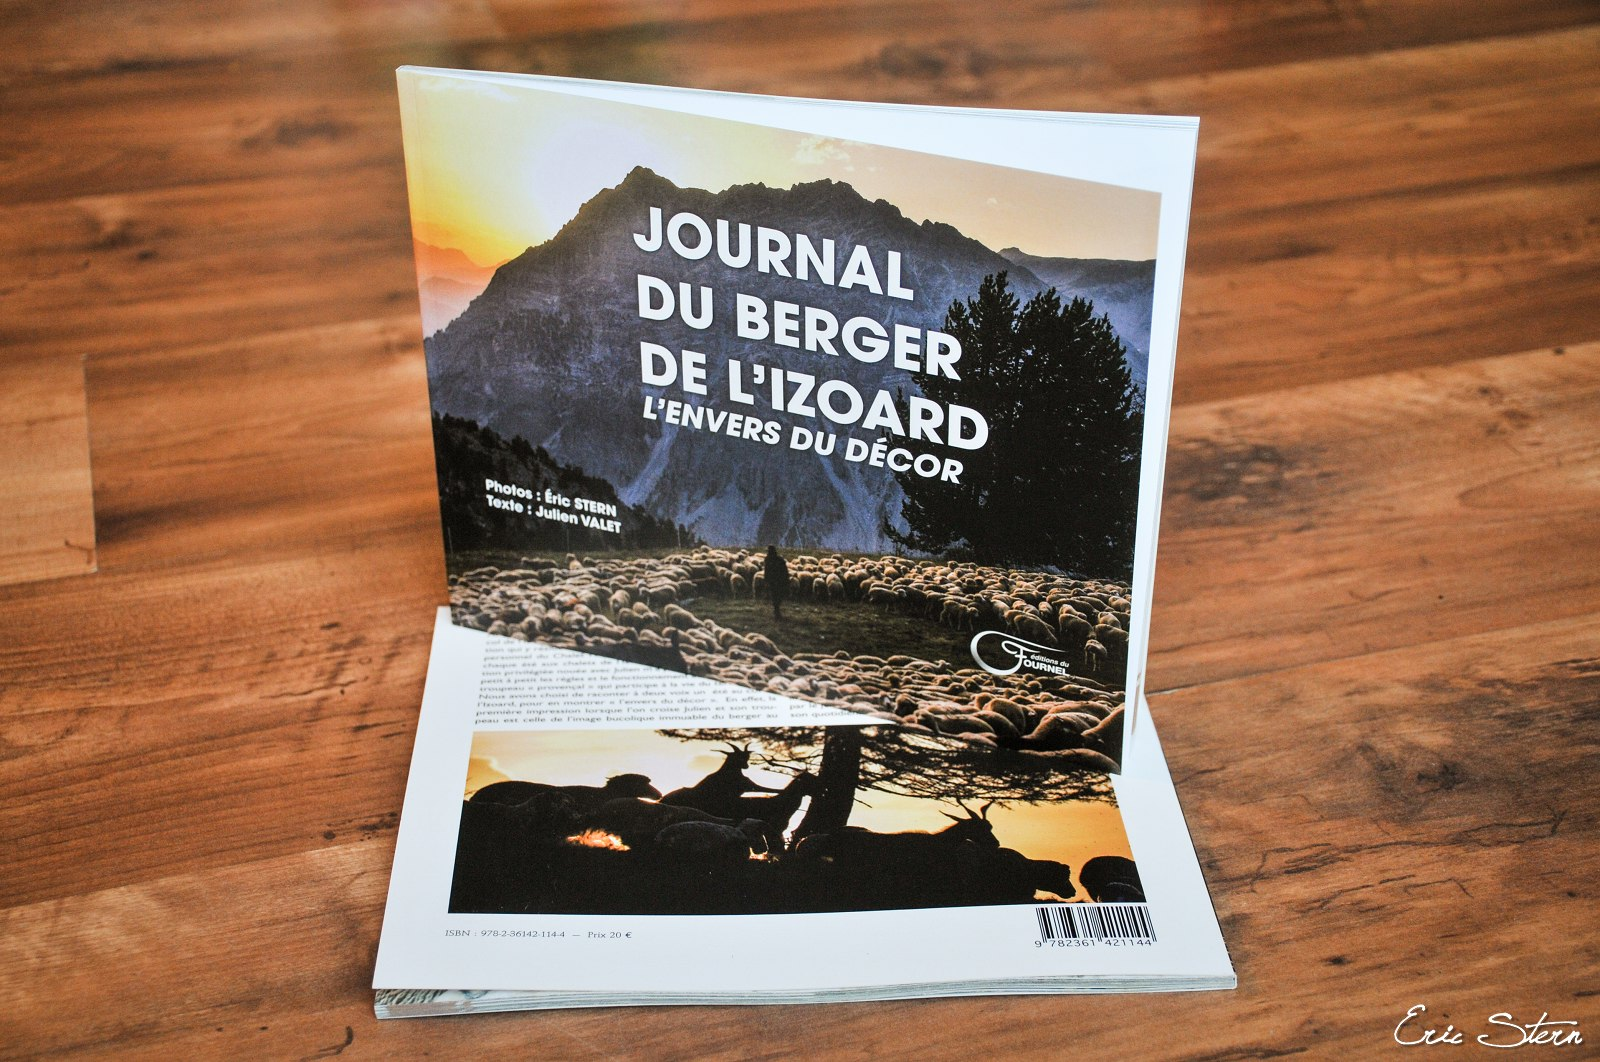 Le journal du berger de l'Izoard